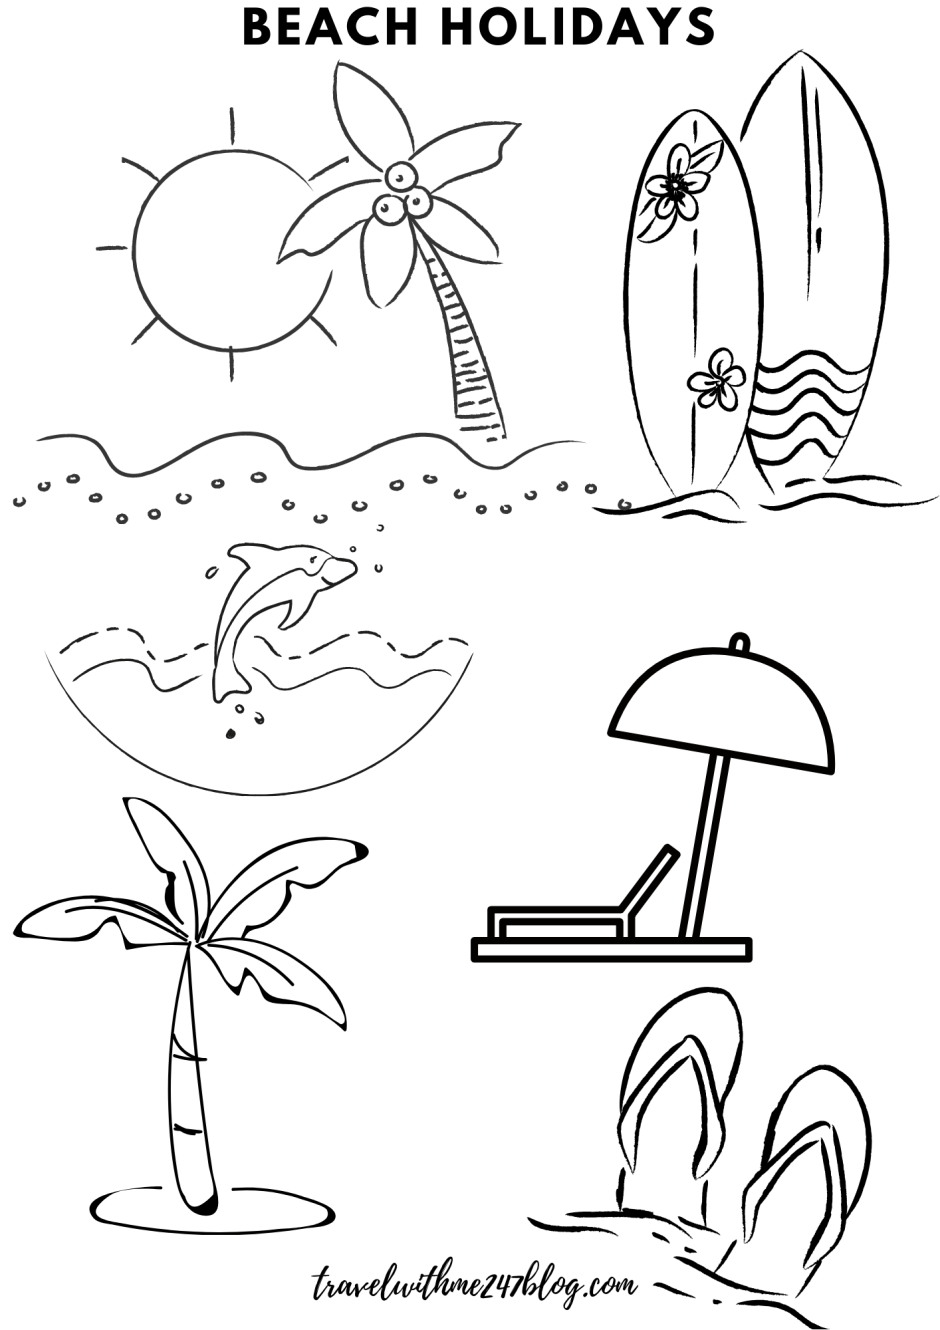 Free Online Coloring Pages - Color Your Travel Memories